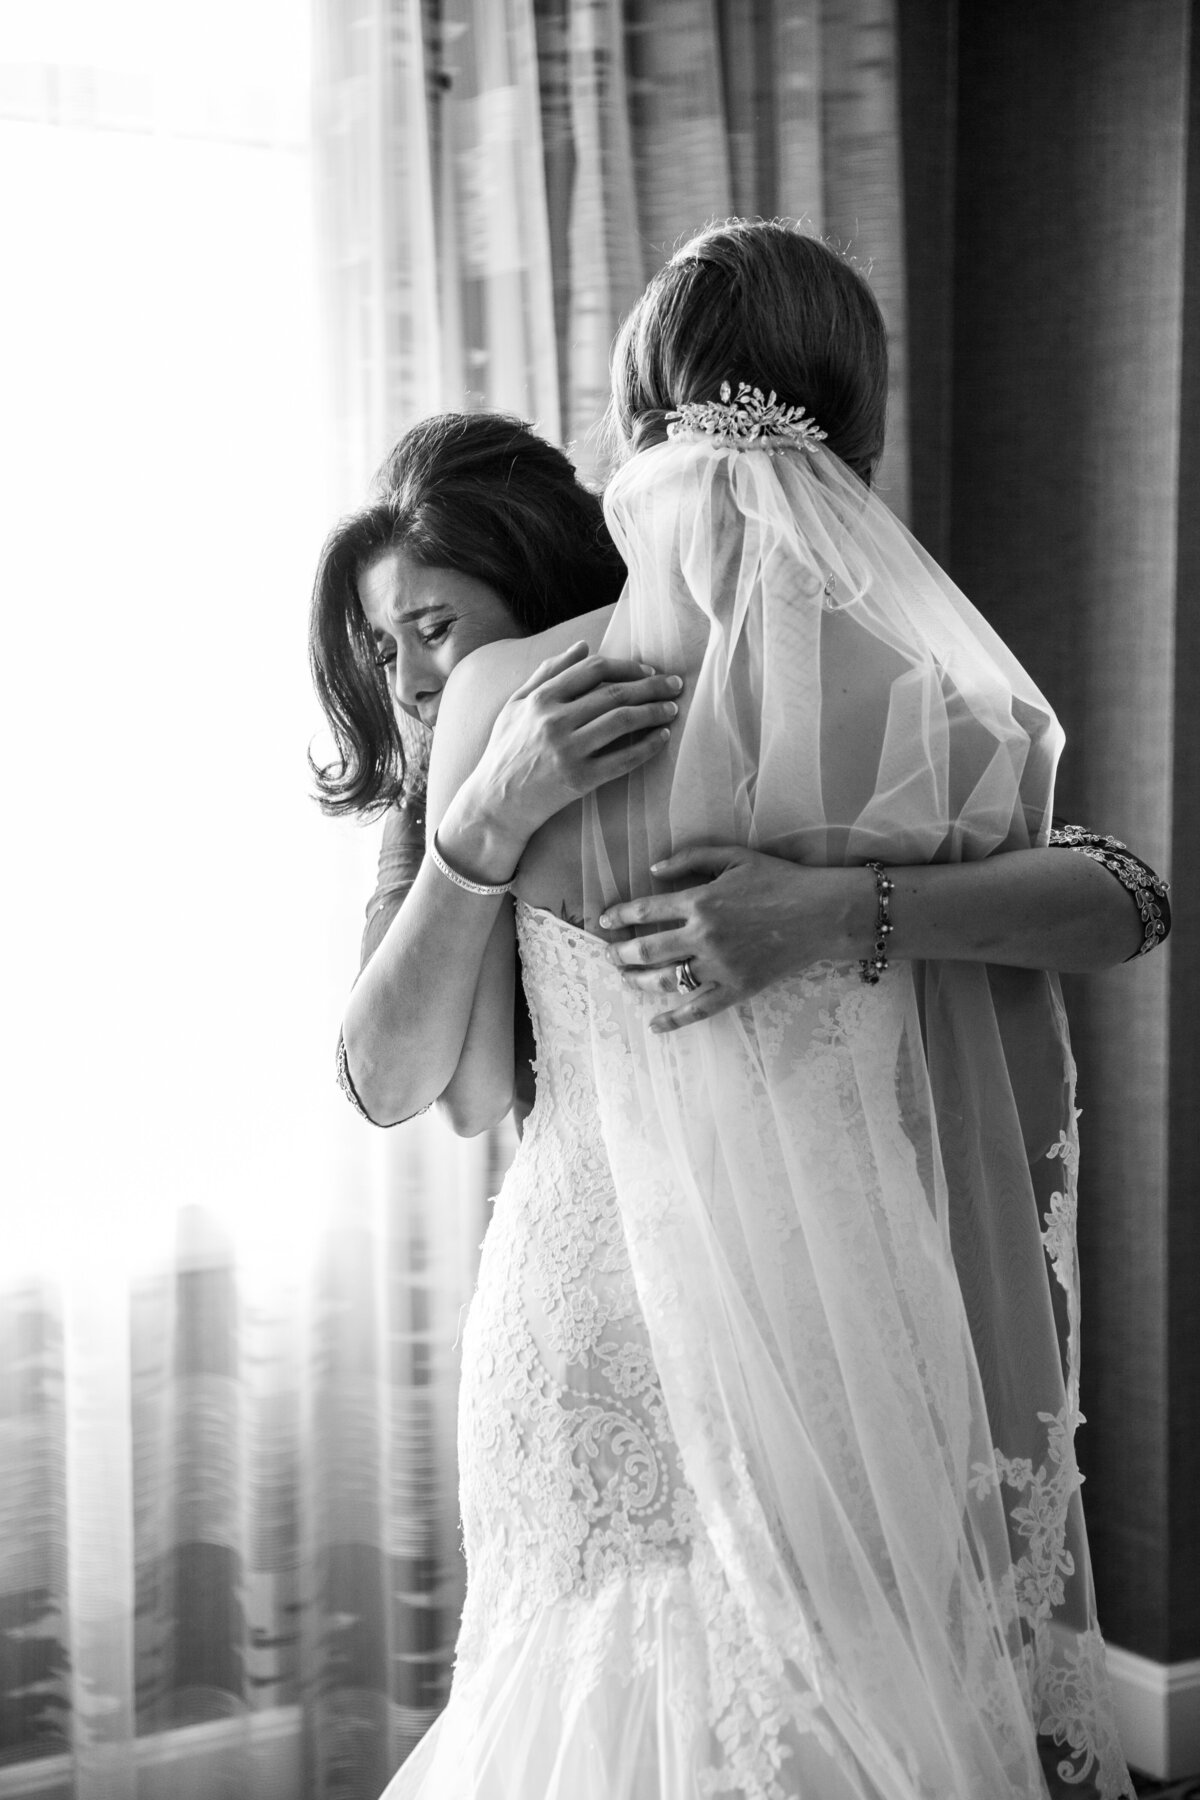 Emotional Moment Between Mom and Bride